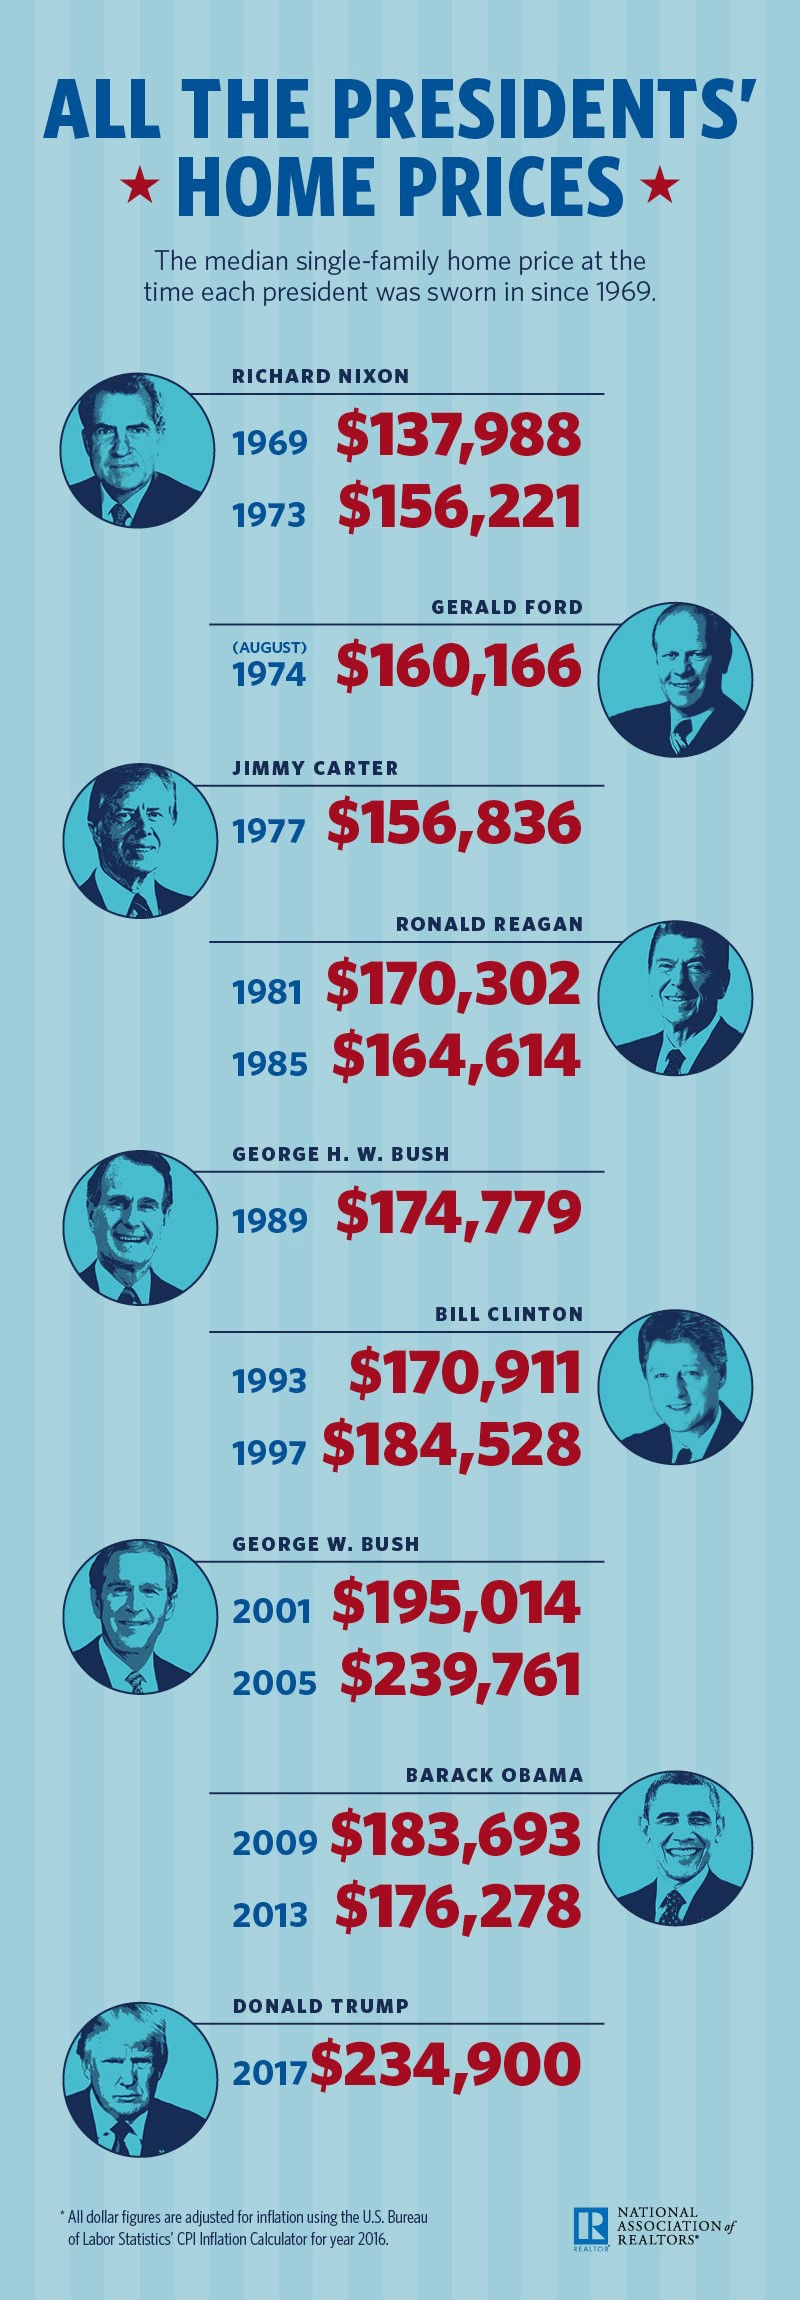 All the Presidents' Home Prices